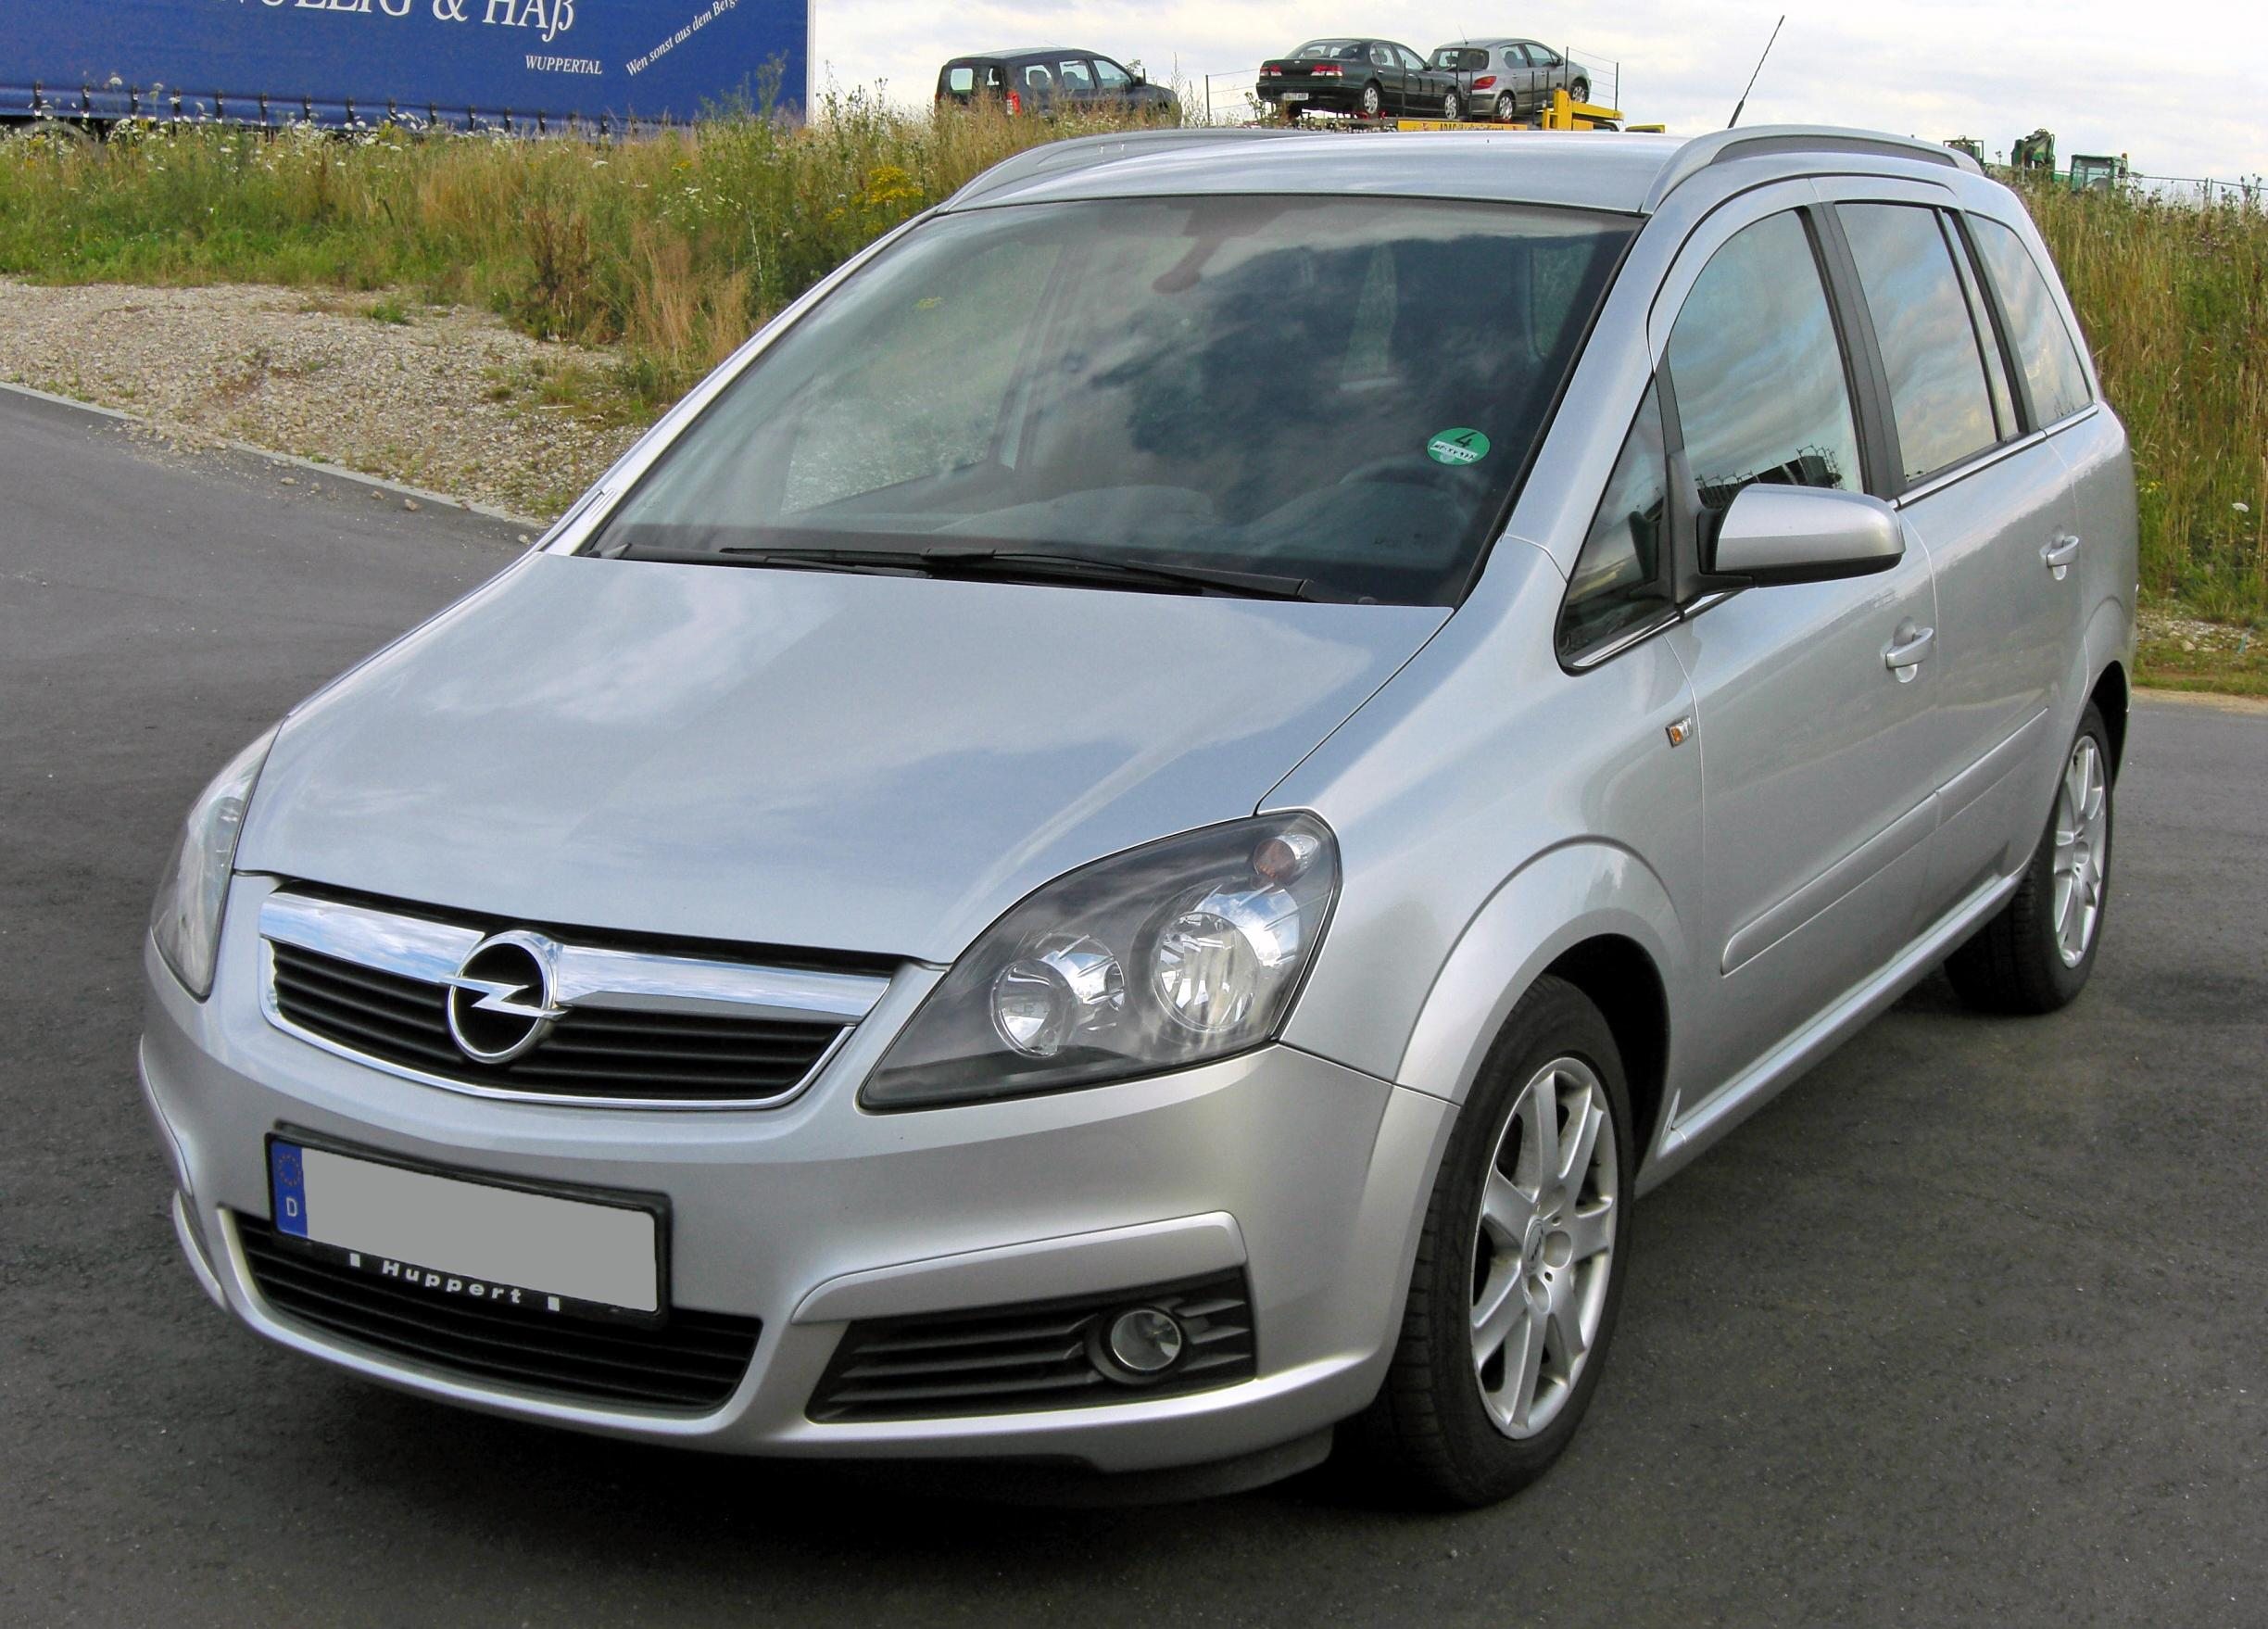 2007 opel zafira b pictures information and specs auto. Black Bedroom Furniture Sets. Home Design Ideas